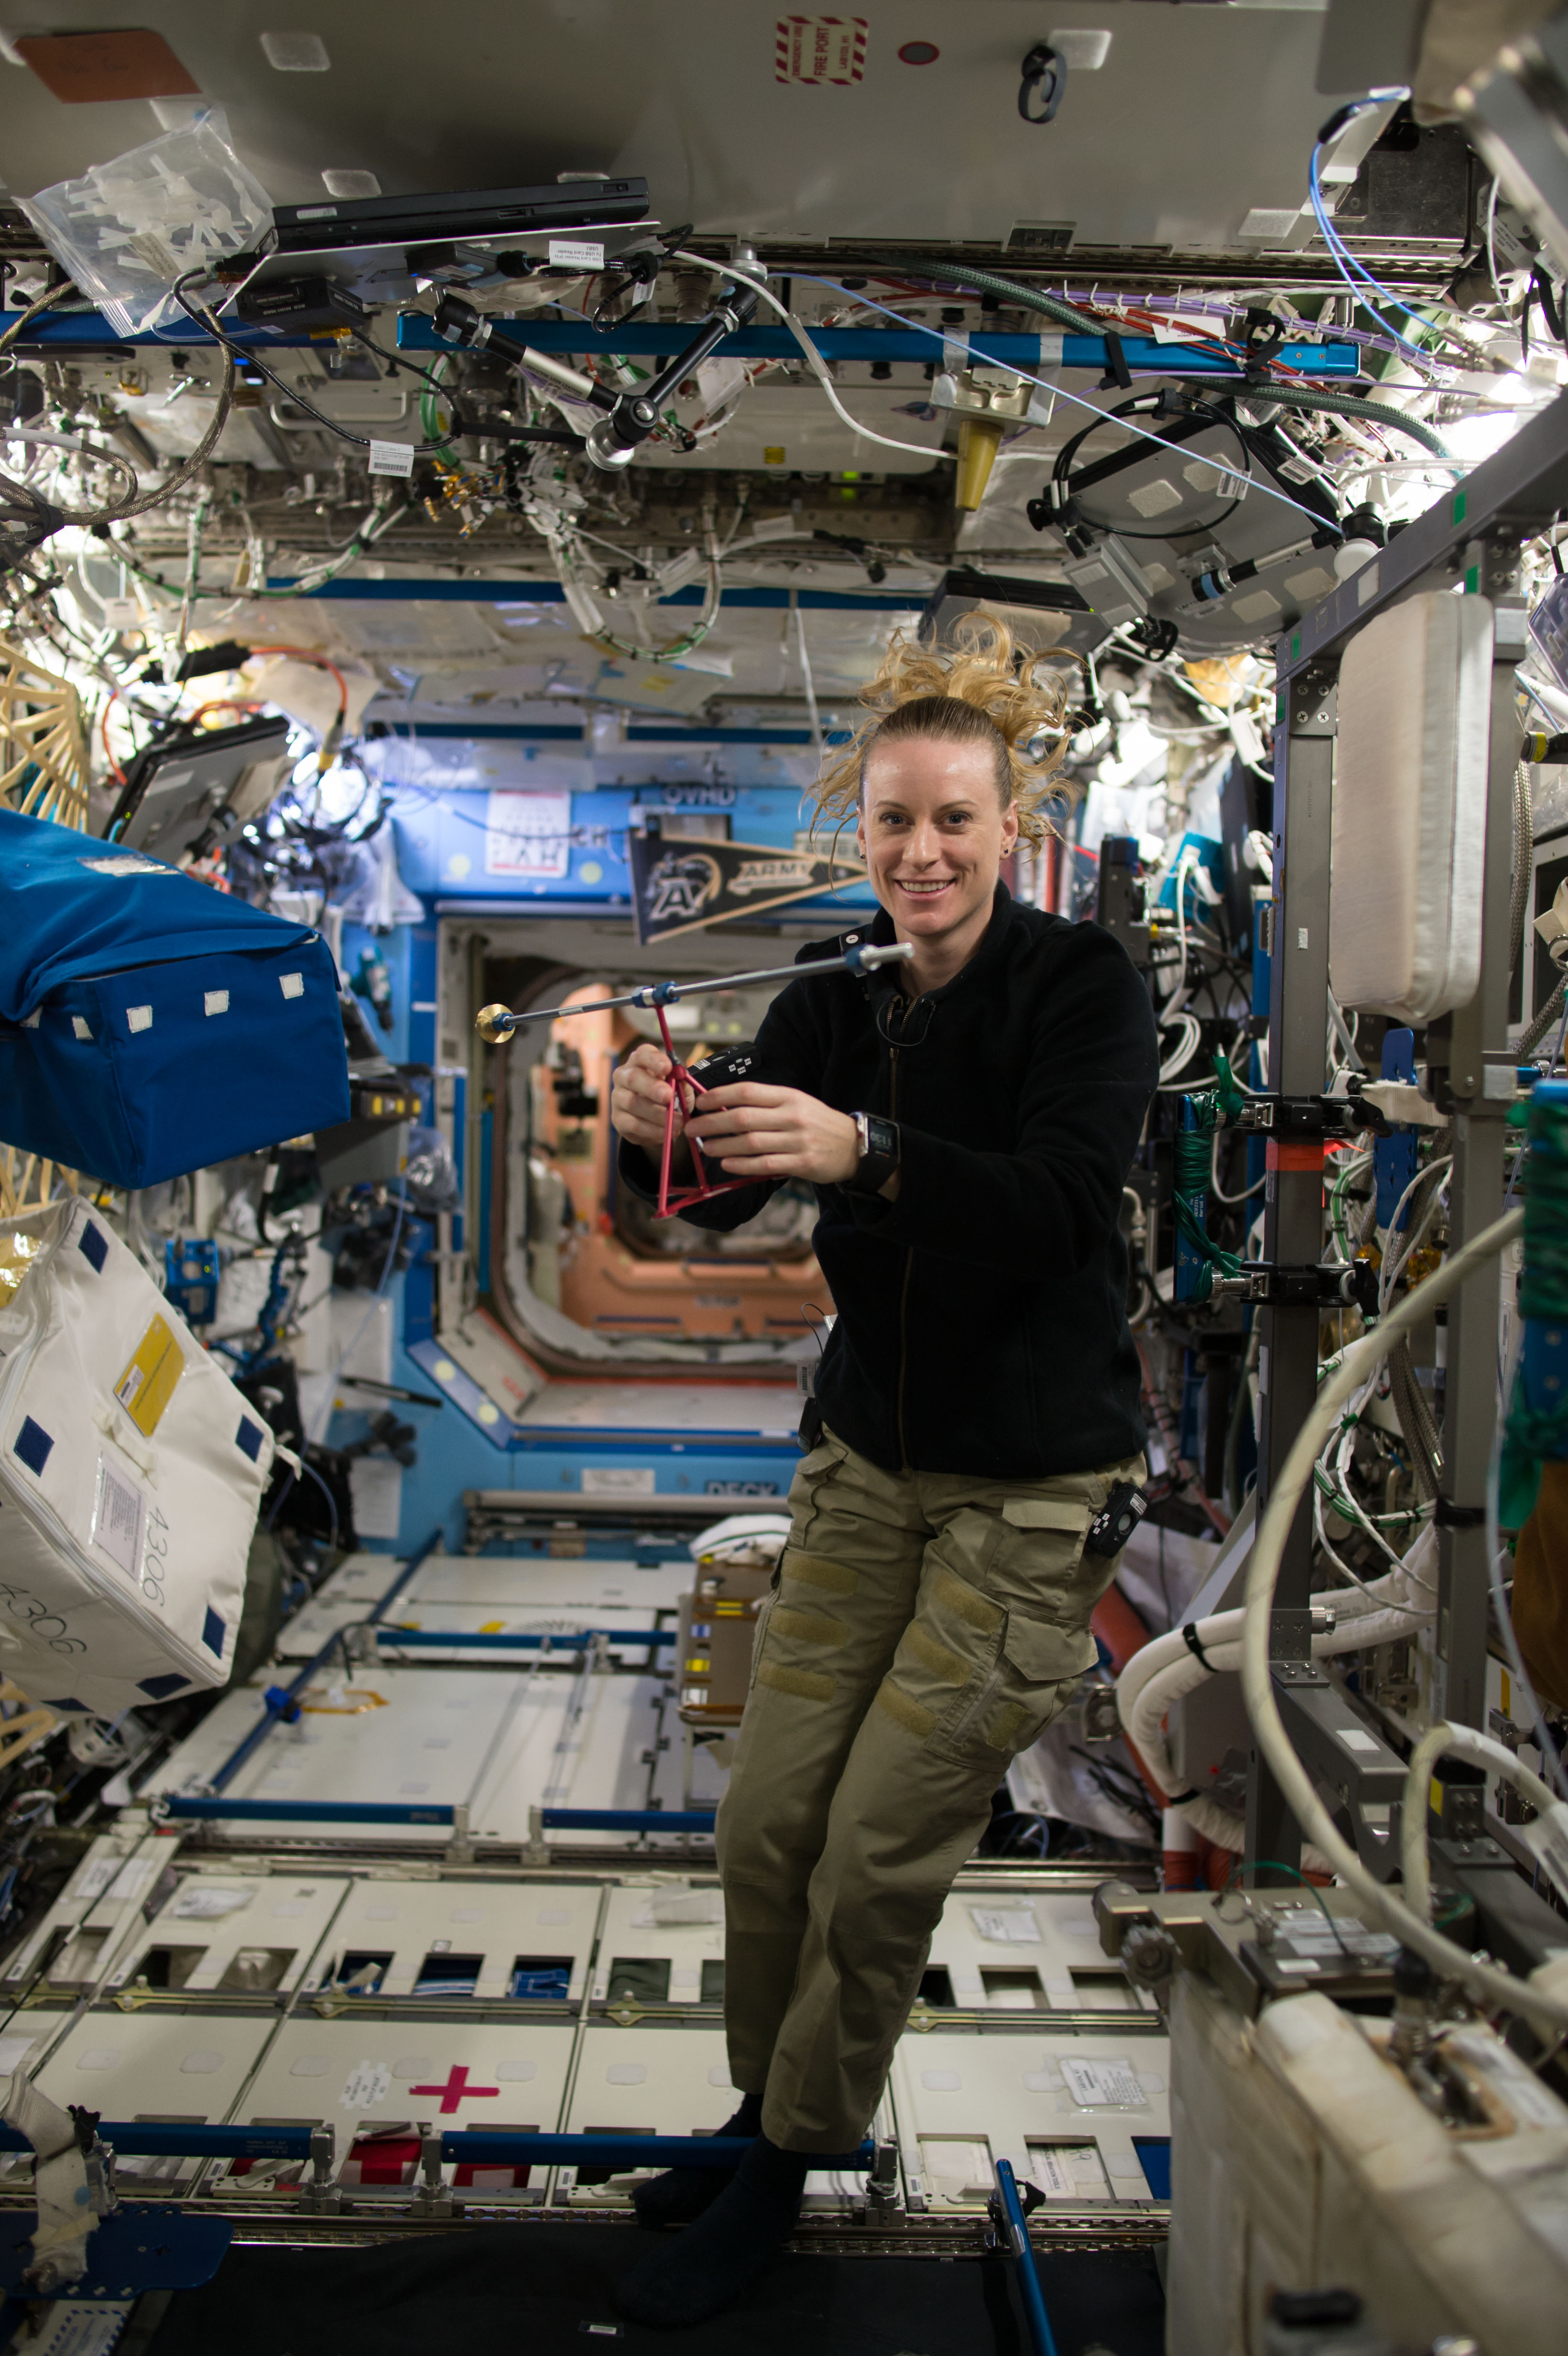 Story Time From Space: In-Orbit Readings and Science to